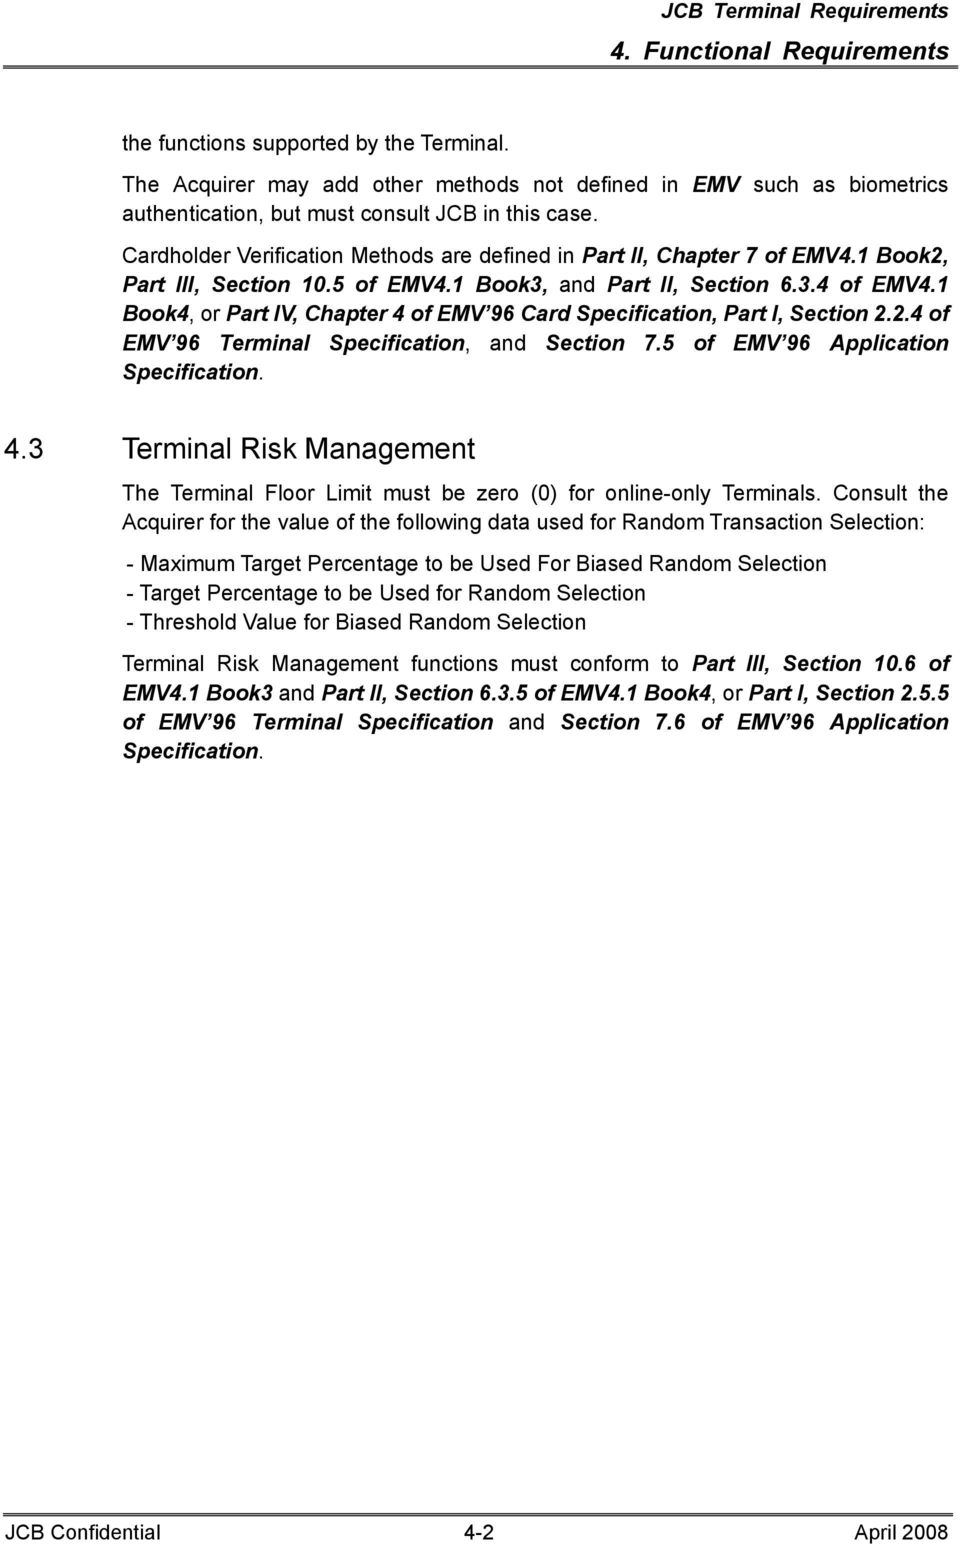 1 Book4, or Part IV, Chapter 4 of EMV 96 Card Specification, Part I, Section 2.2.4 of EMV 96 Terminal Specification, and Section 7.5 of EMV 96 Application Specification. 4.3 Terminal Risk Management The Terminal Floor Limit must be zero (0) for online-only Terminals.